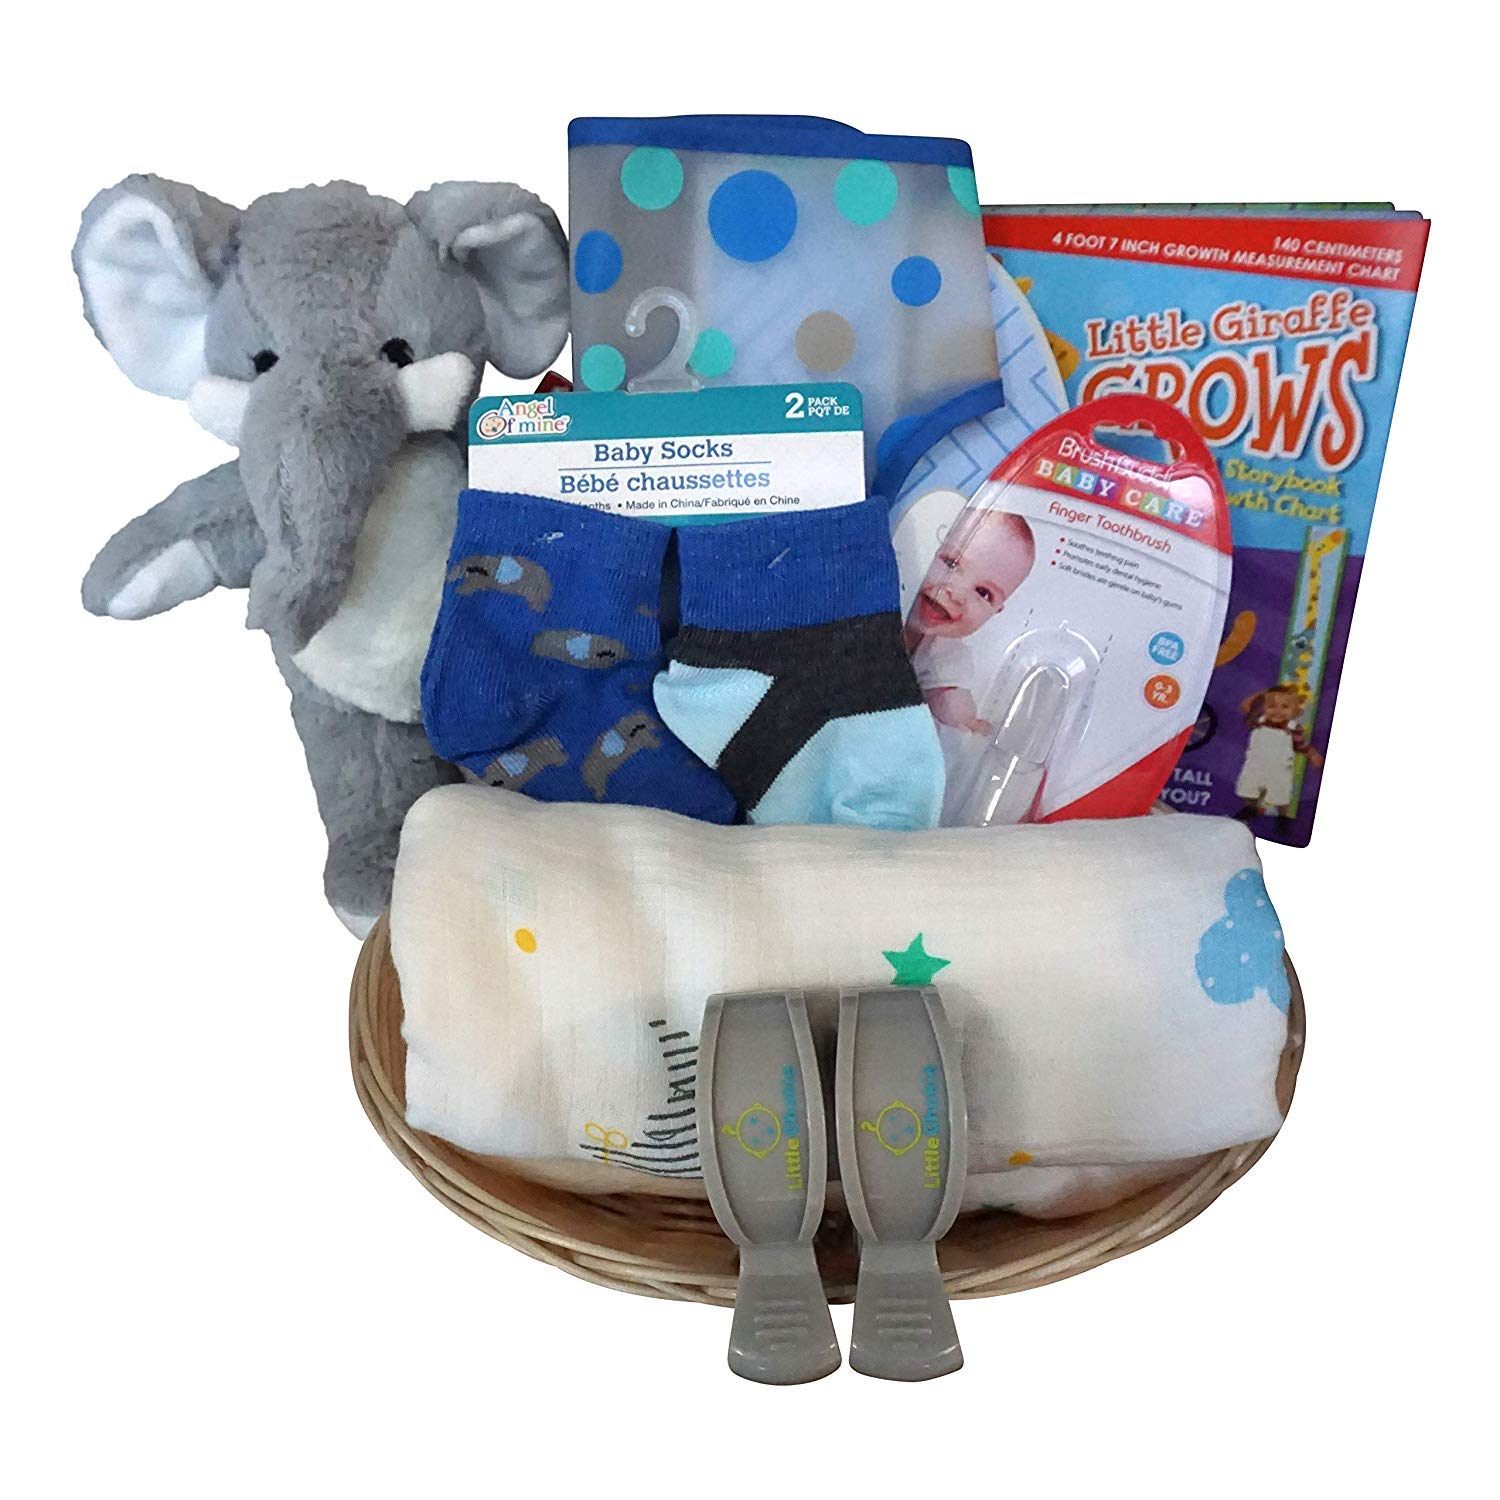 Elephant Baby Gift Basket for Baby Boy or Girl with Cotton Blanket, Growth Chart, Socks (BlueElephant)